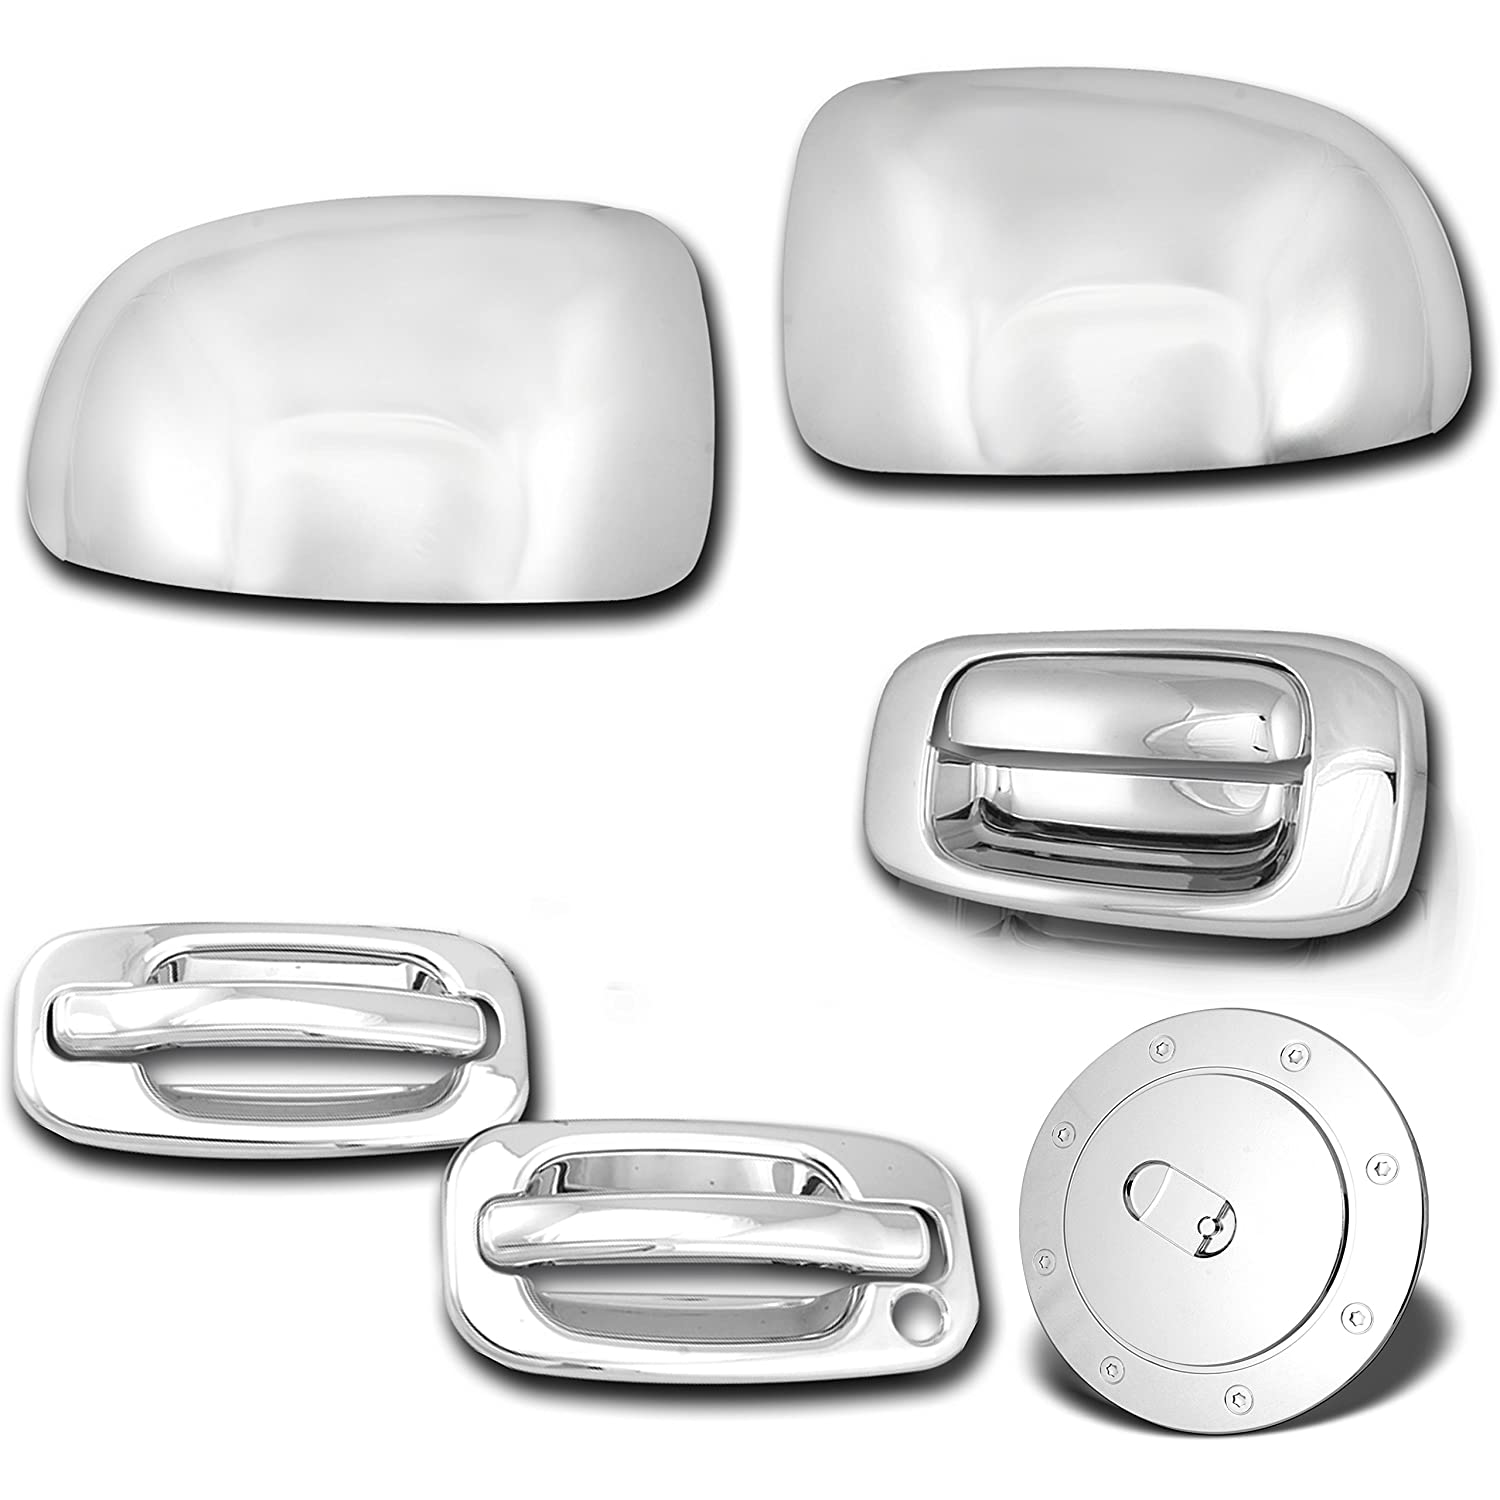 99-06 Chevy Silverado Chrome FULL Mirror+4 Door Handle+PSG KEYHOL+Tailgate Cover